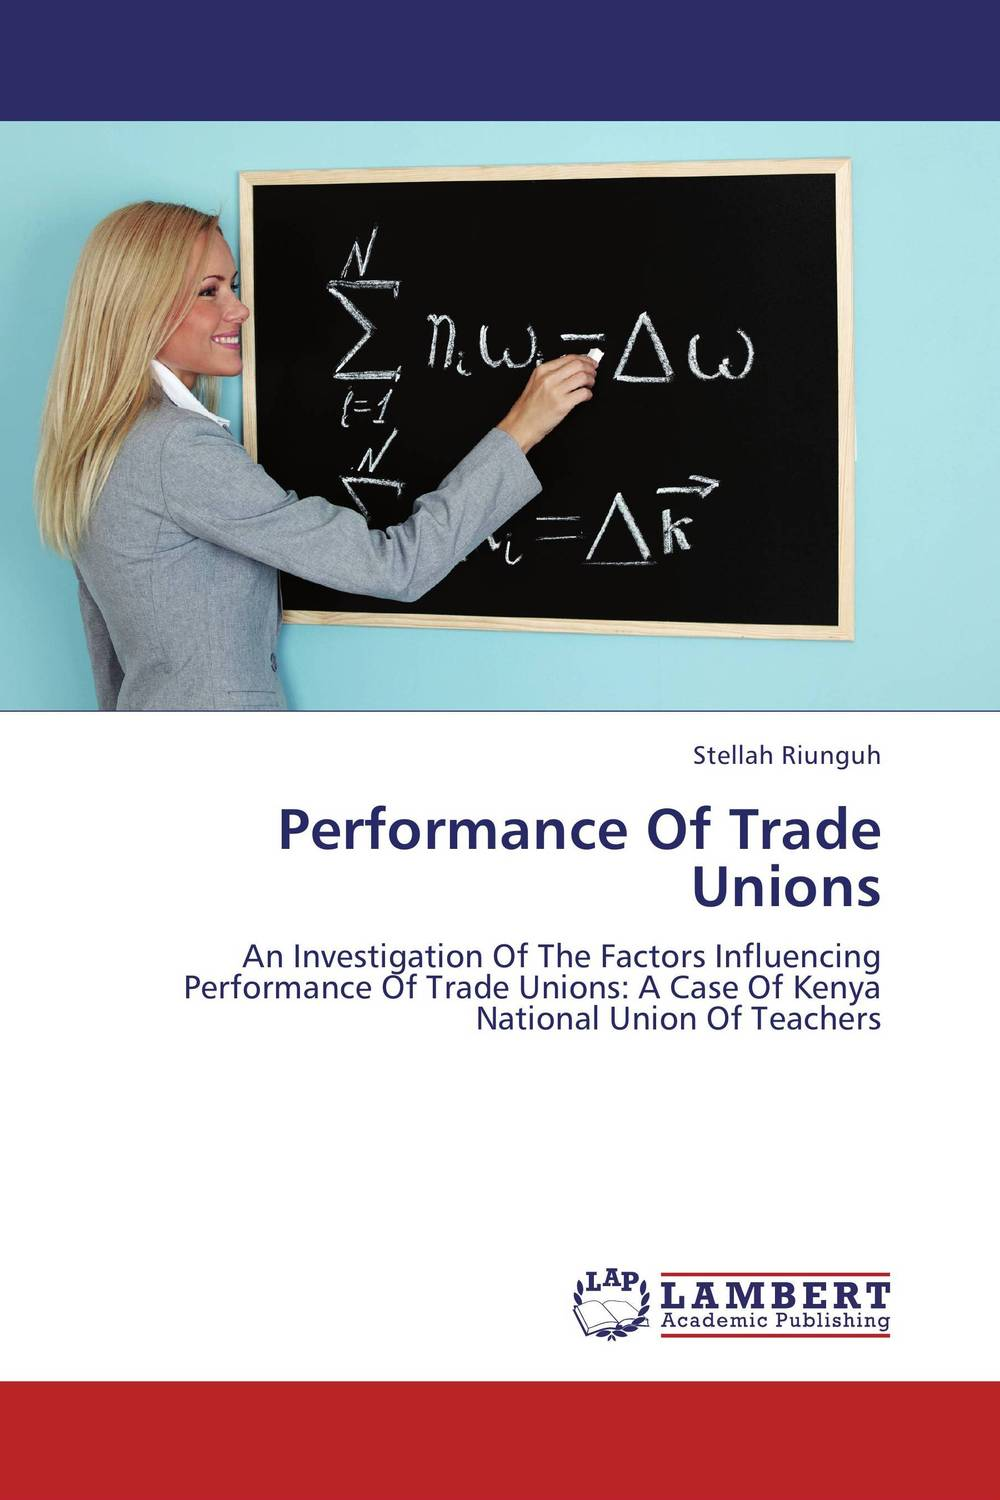 Performance Of Trade Unions predictive validity of kcpe performance on kcse performance